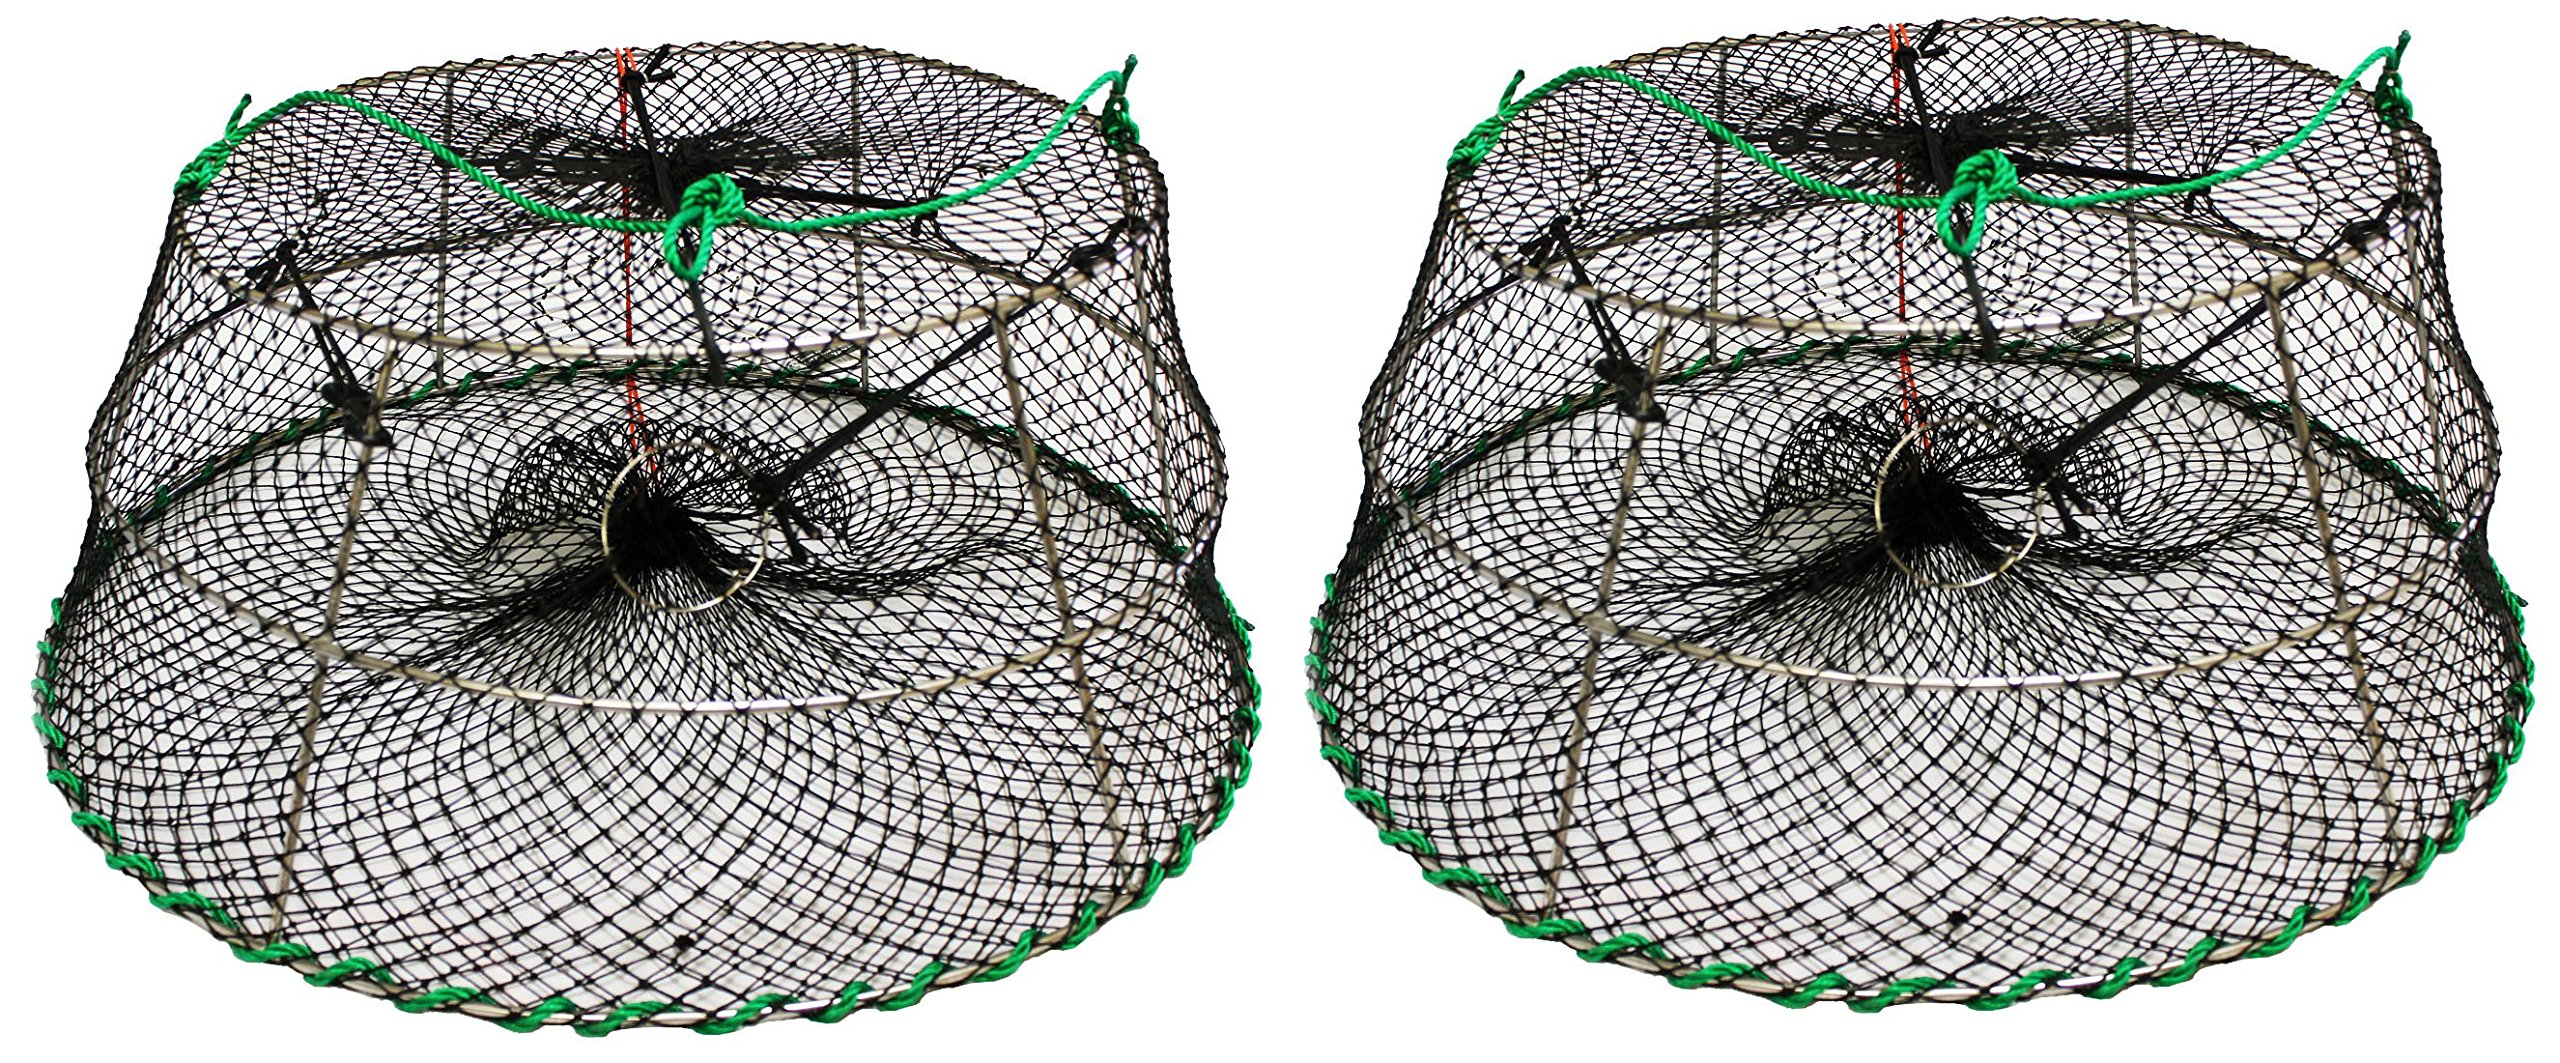 2-Pack of KUFA Sports Tower Style Stainless Steel Prawn trap (Trap Size: Ø30''xØ20''x12''; Stretched Mesh size: 1-1/8'') CT76x2